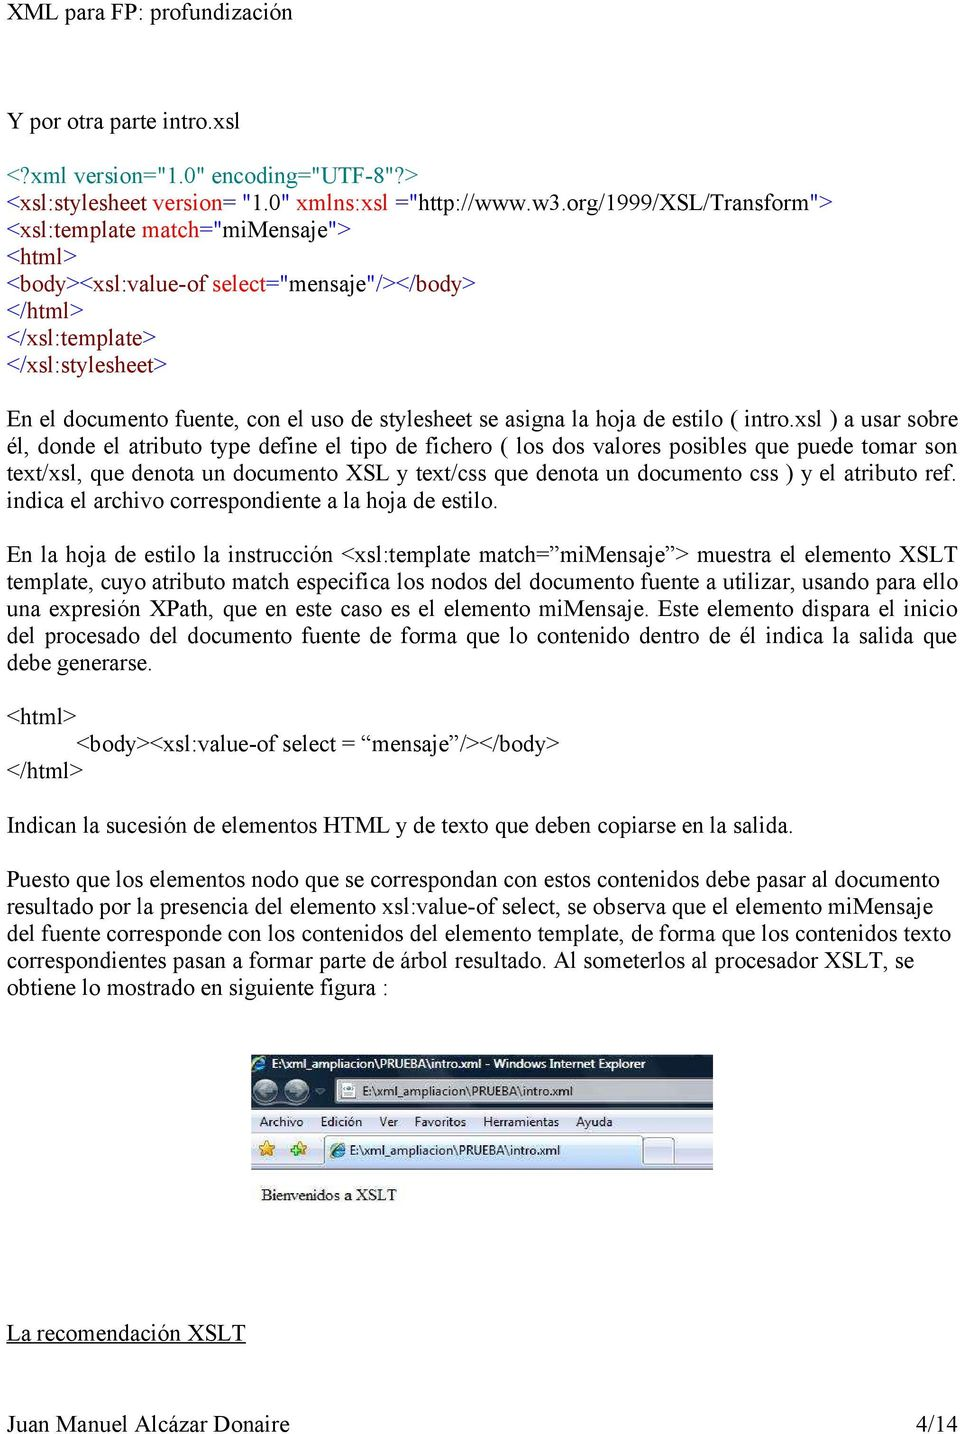 Transformación de documentos : XSLT - PDF